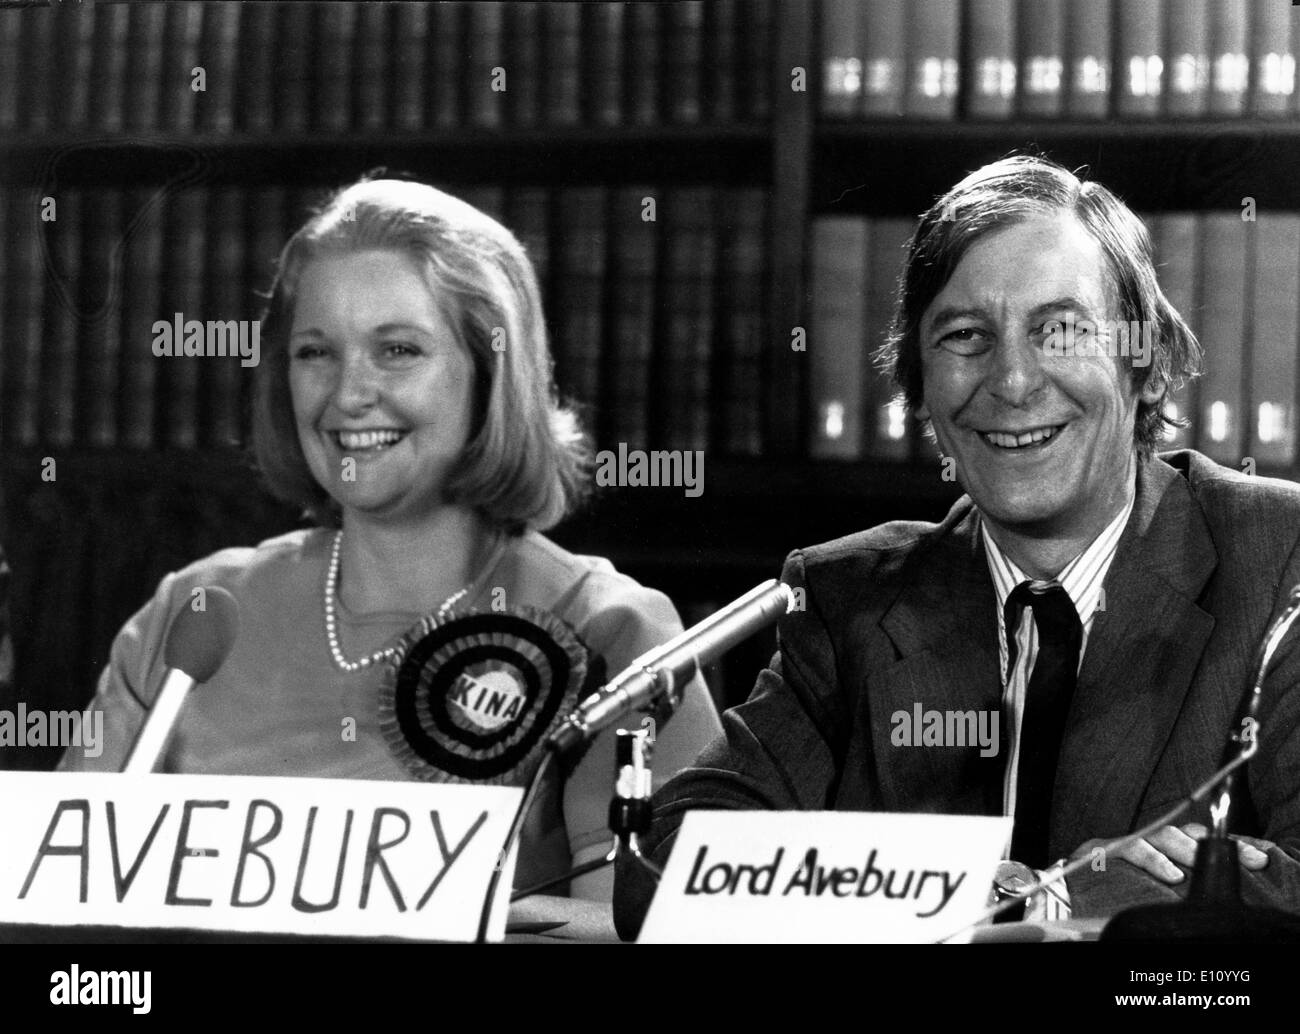 LORD AVEBURY and his wife KINA AVEBURY, at seat at Orpington's, Kent, at Liberal Party press conference in London - Stock Image